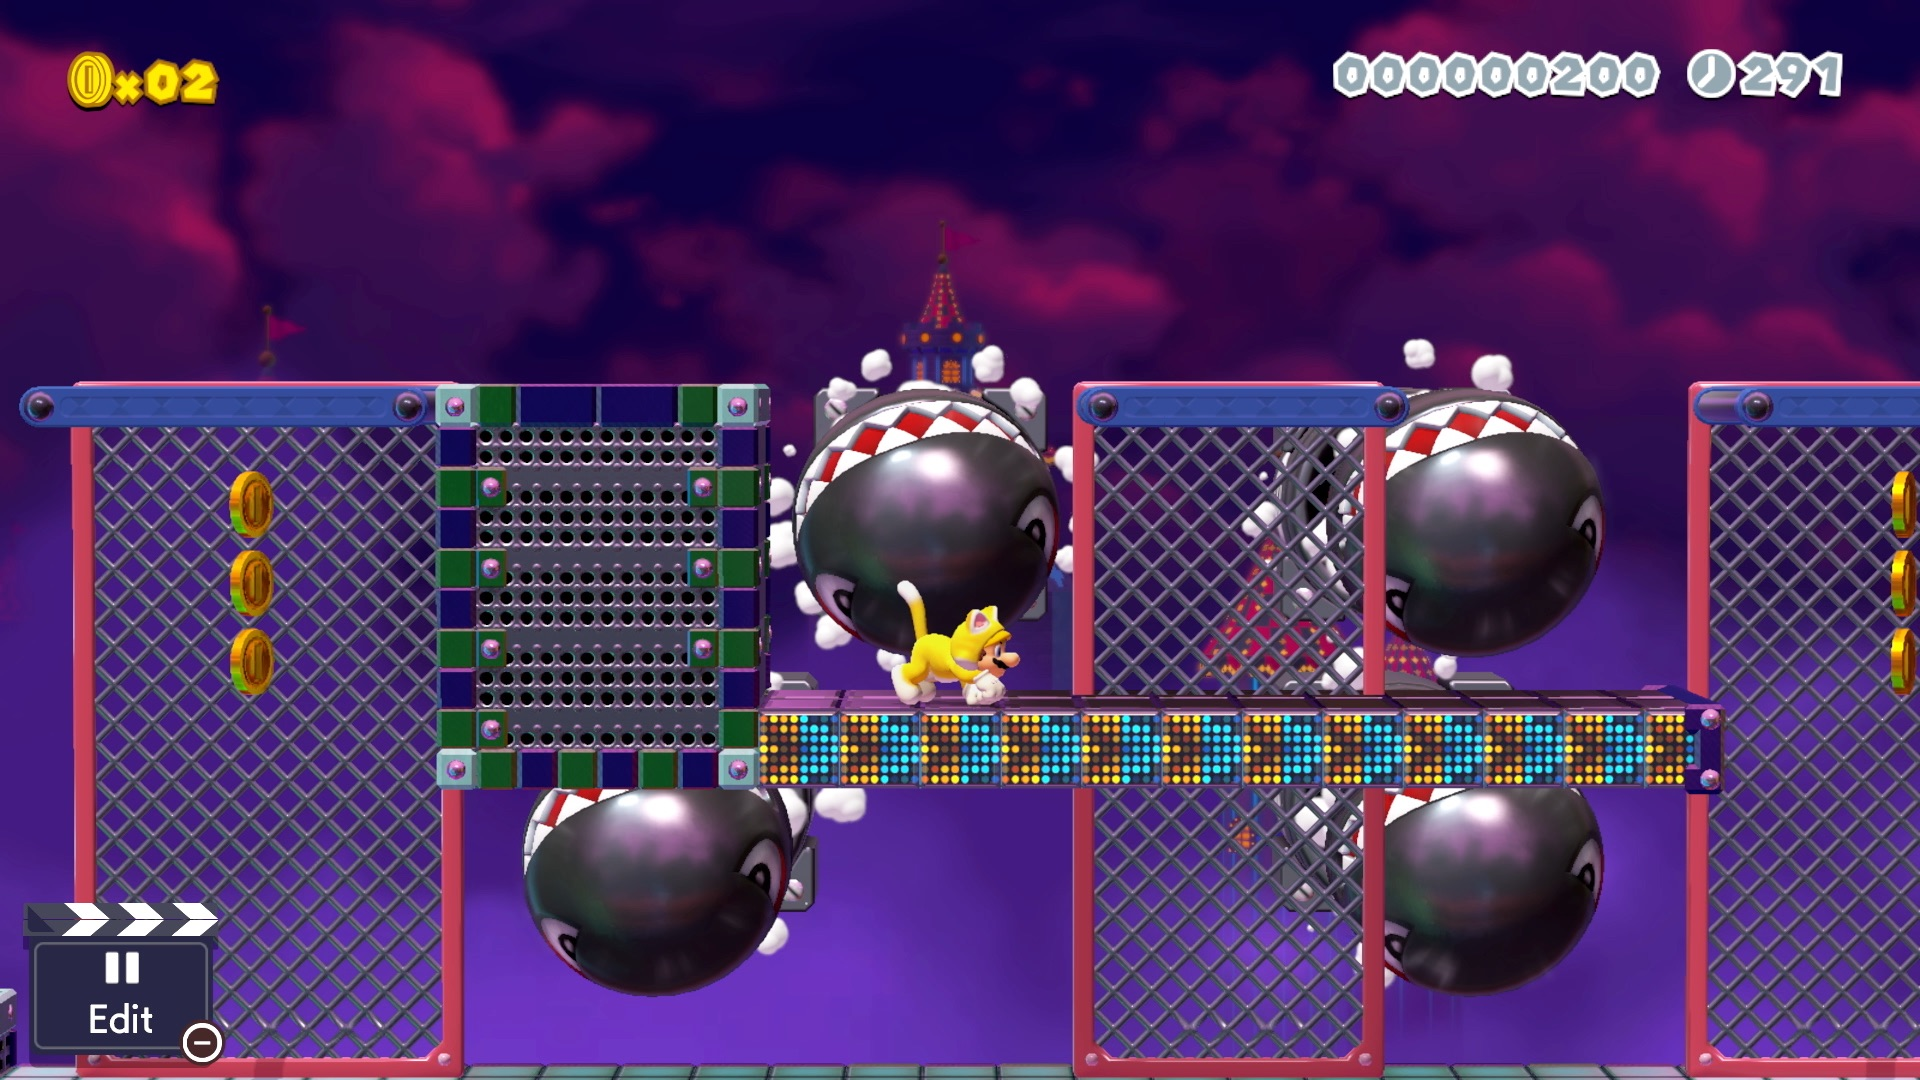 Cat Mario dodges bullet bills in Super Mario Maker 2